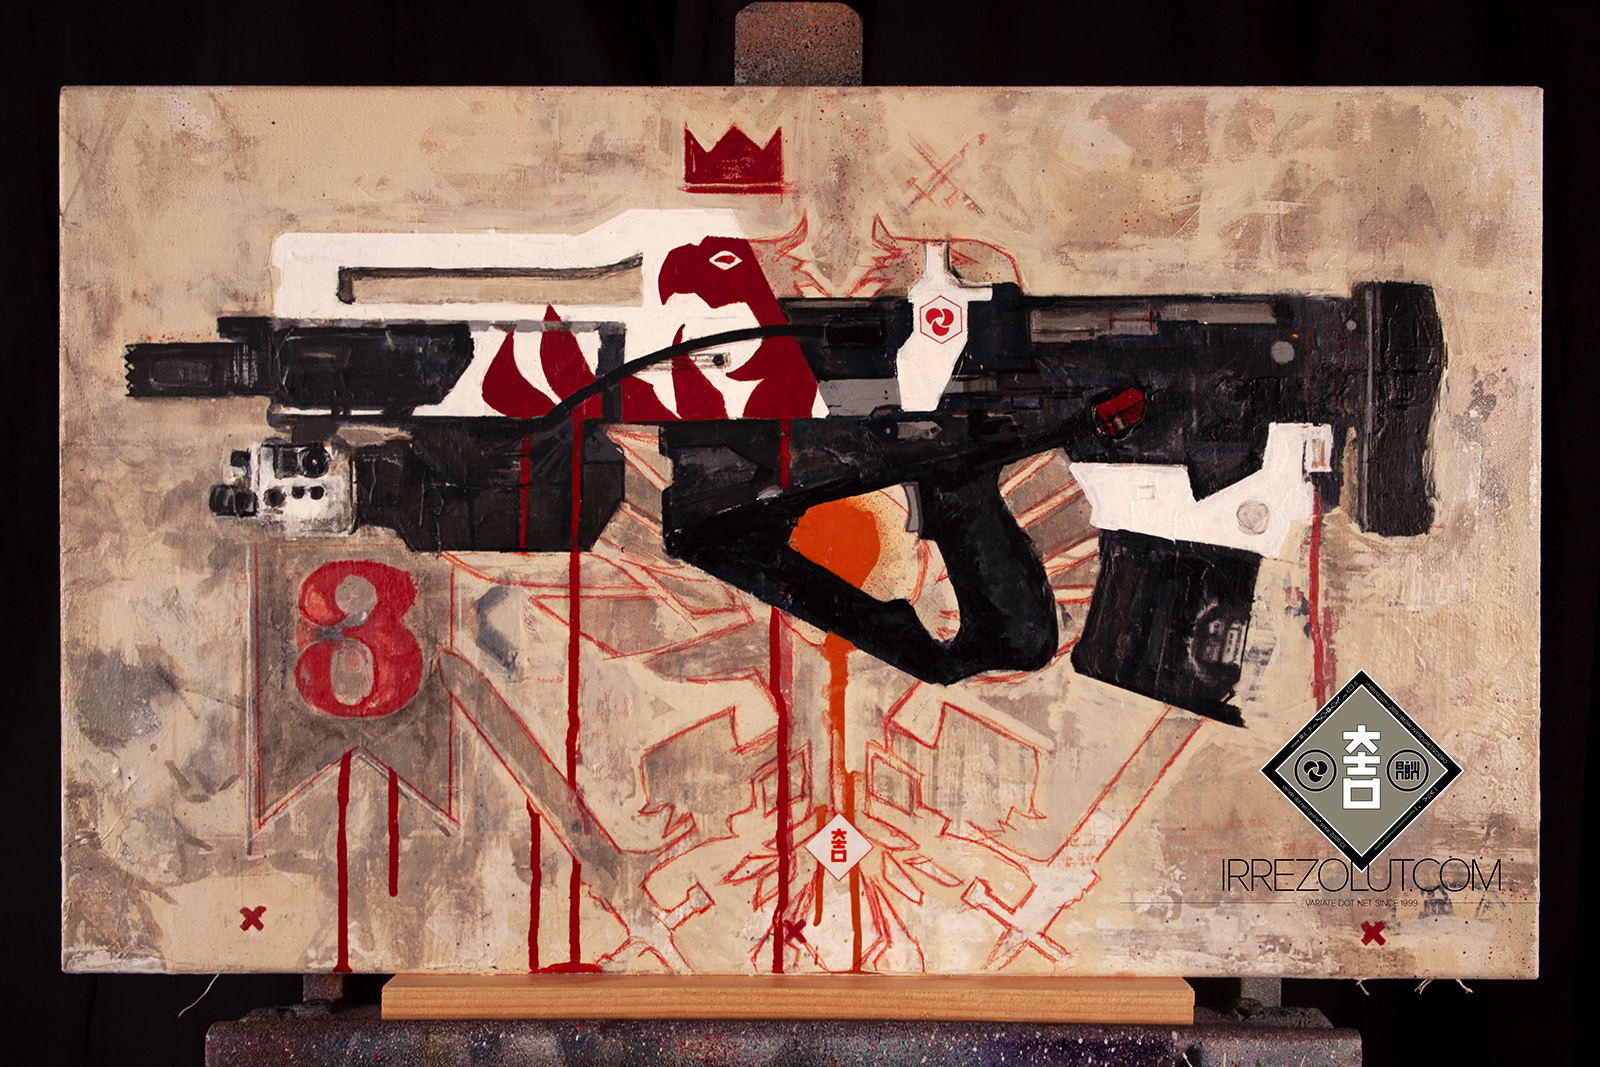 Redrix's Claymore (Complete) - background and decoration concept complete - final definition on arm added - preview photo (not print ready)